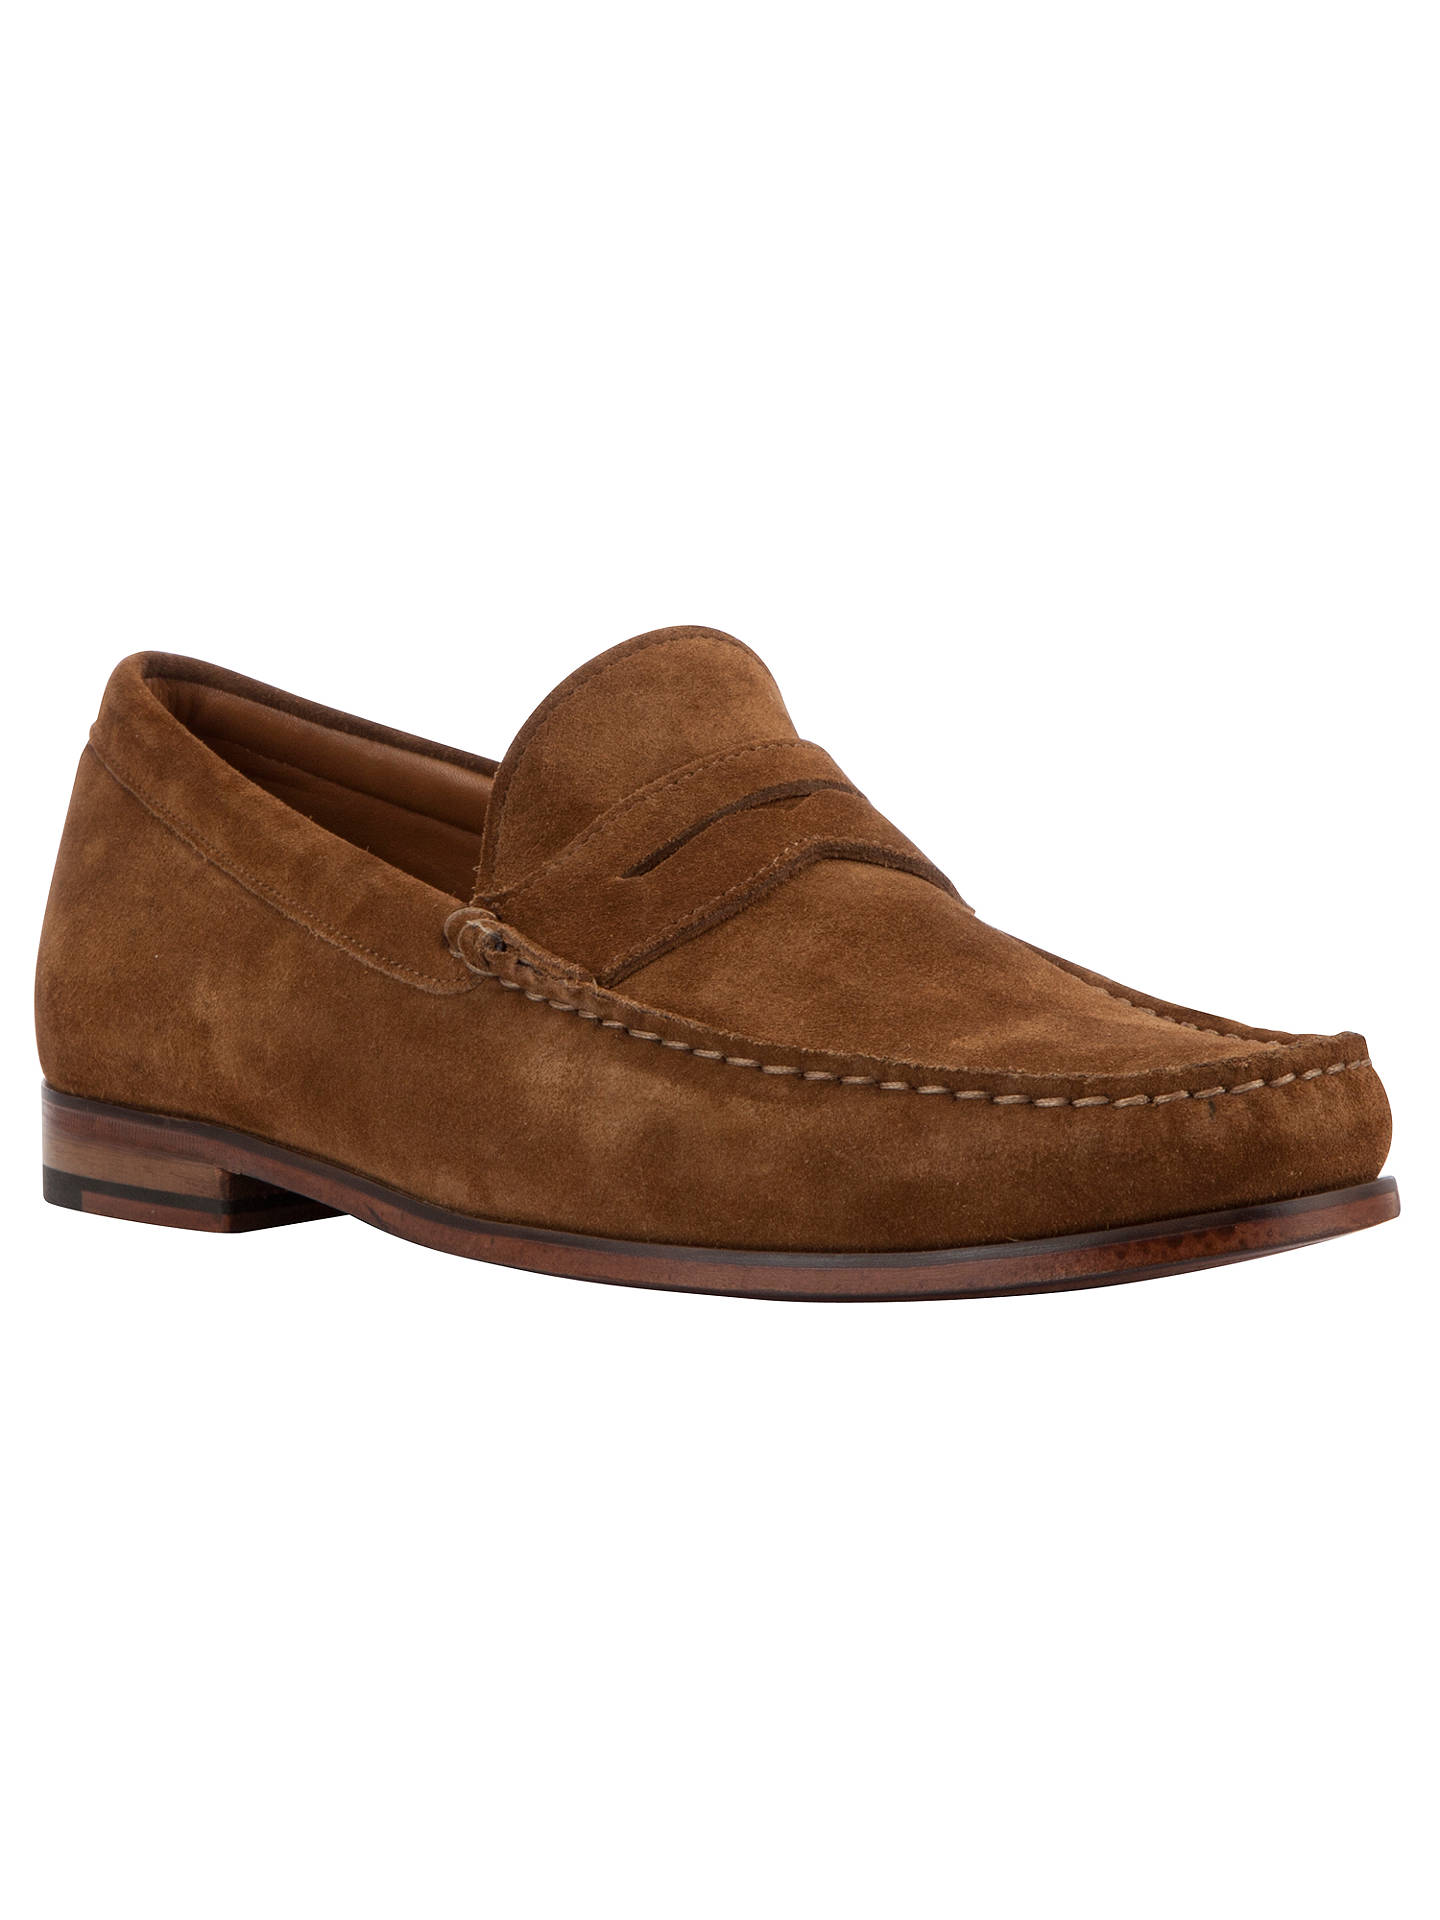 b7309560382 John Lewis Lloyd Suede Penny Loafers at John Lewis   Partners